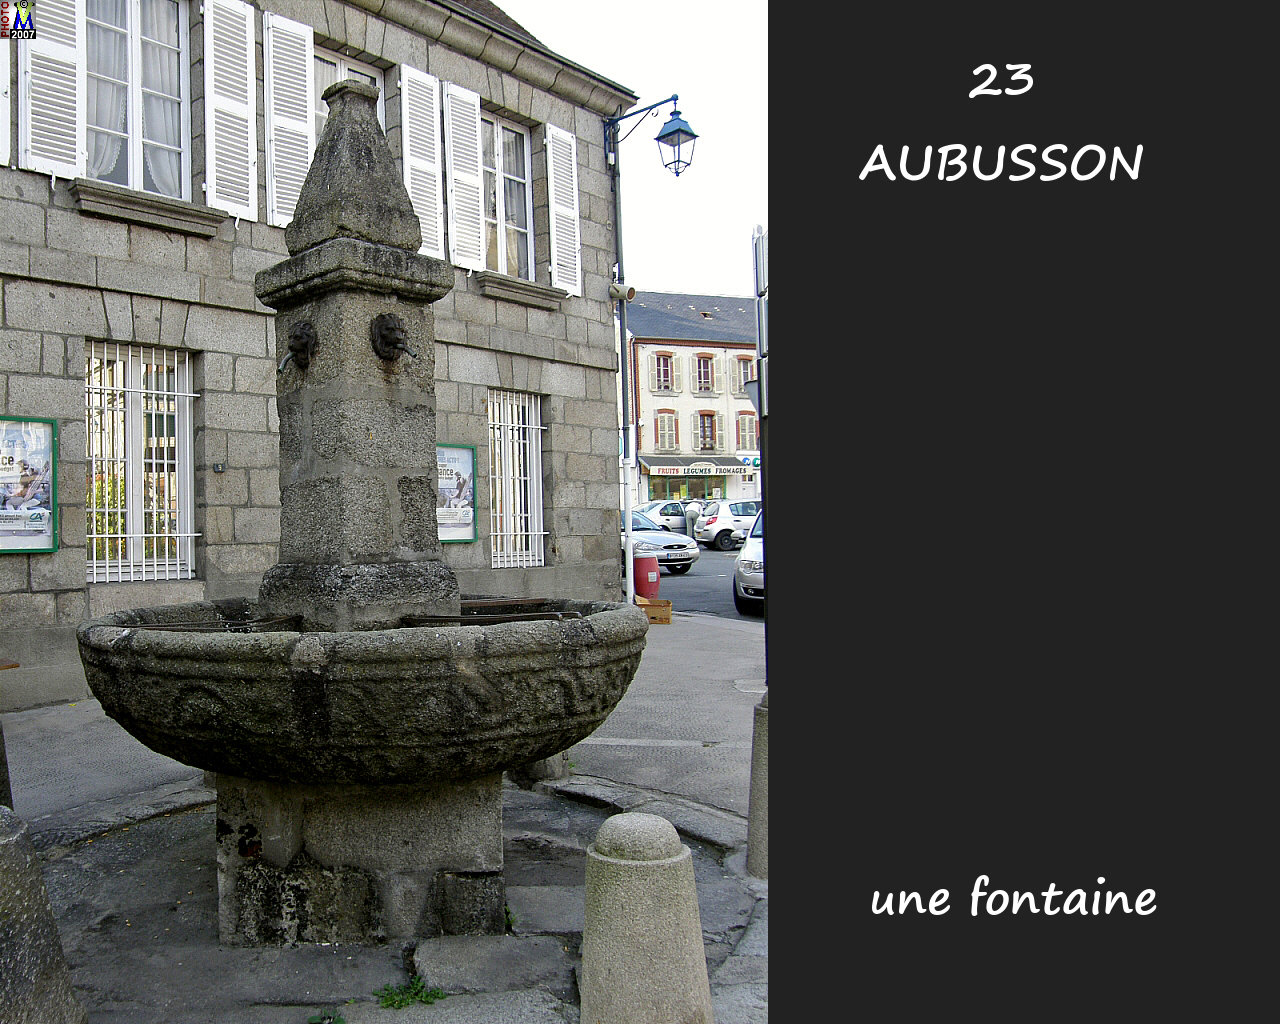 23AUBUSSON_fontaine_100.jpg